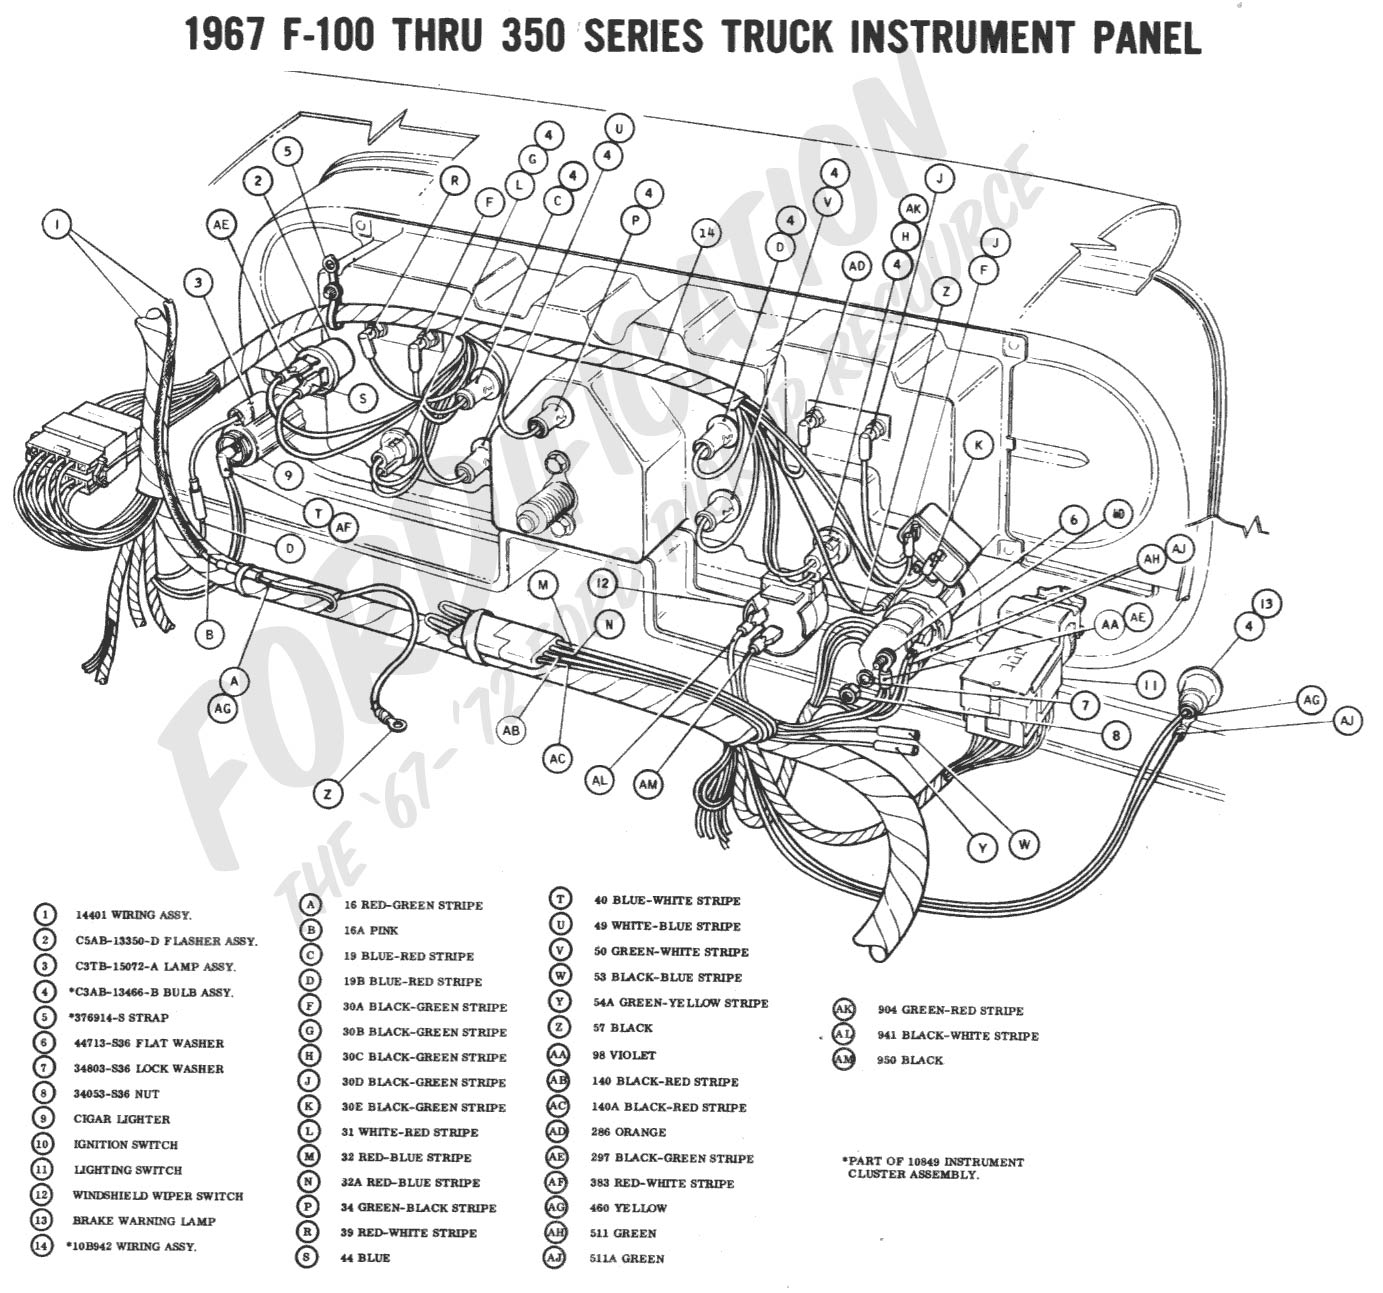 Ford Truck Technical Drawings And Schematics Section H Wiring 1974 Bmw 2002 Engine Diagram 1967 F 100 Thru 350 Instrument Panel Master